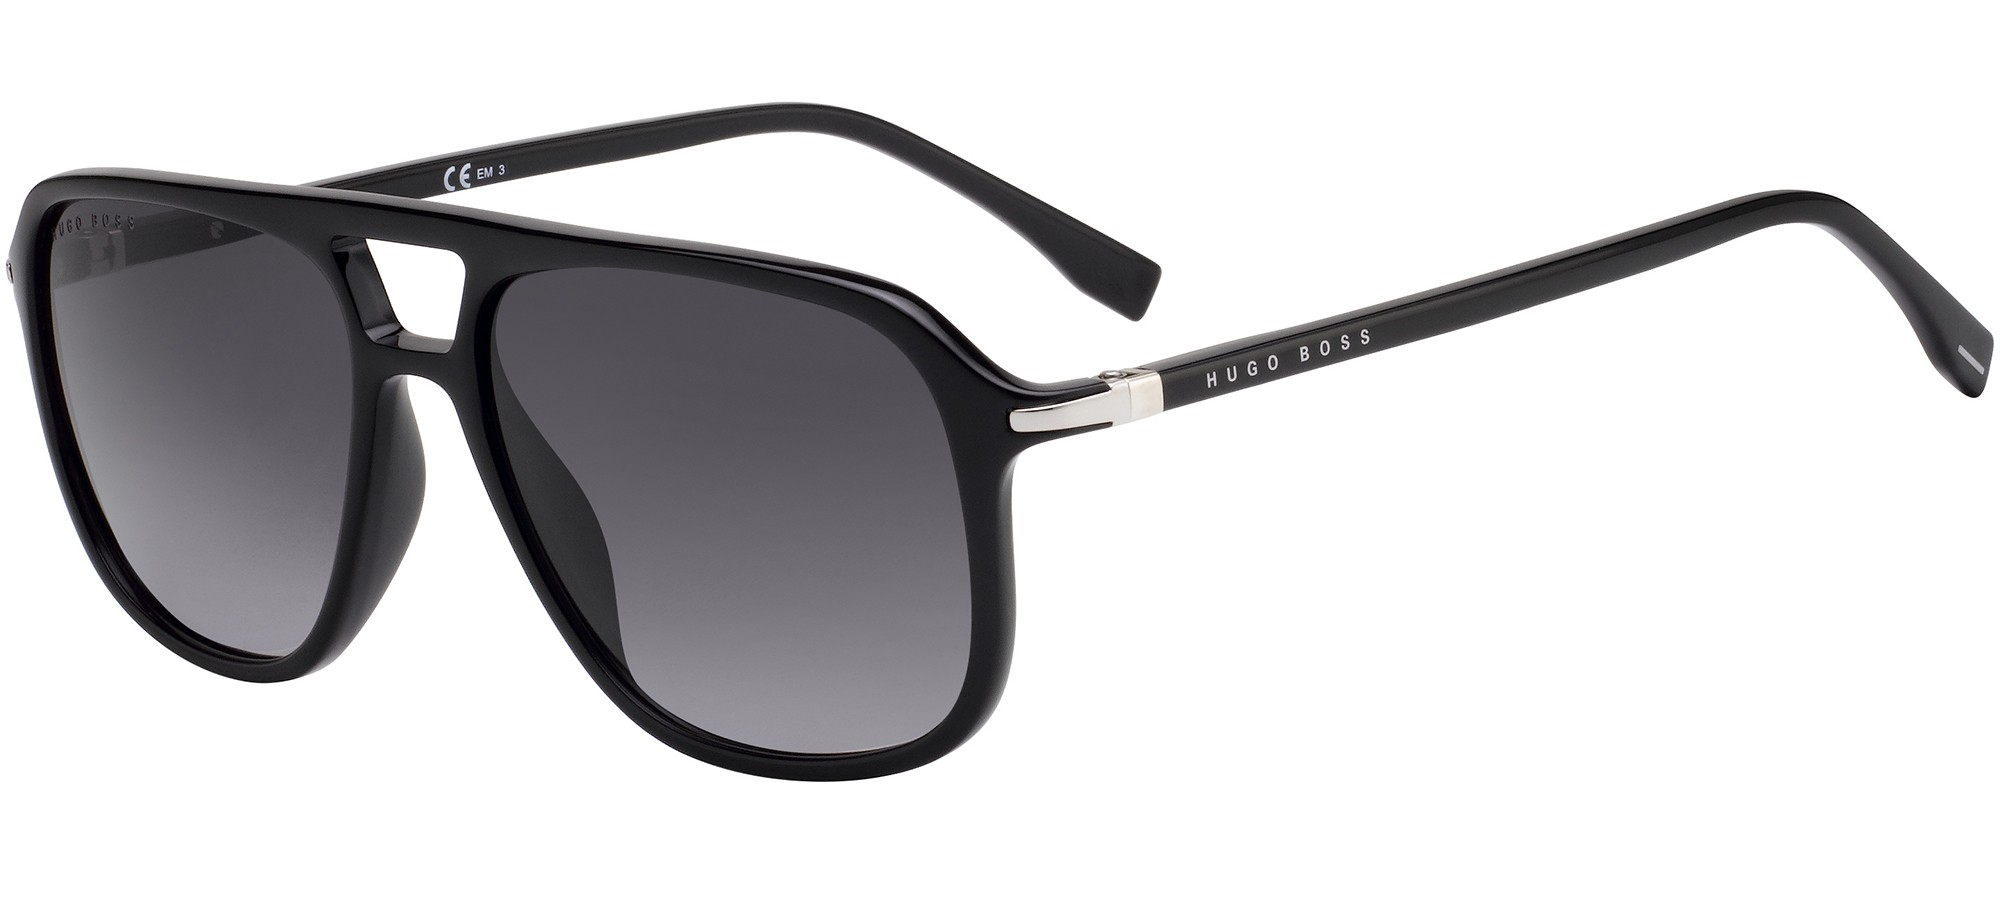 Hugo Boss sunglasses BOSS 1042/S